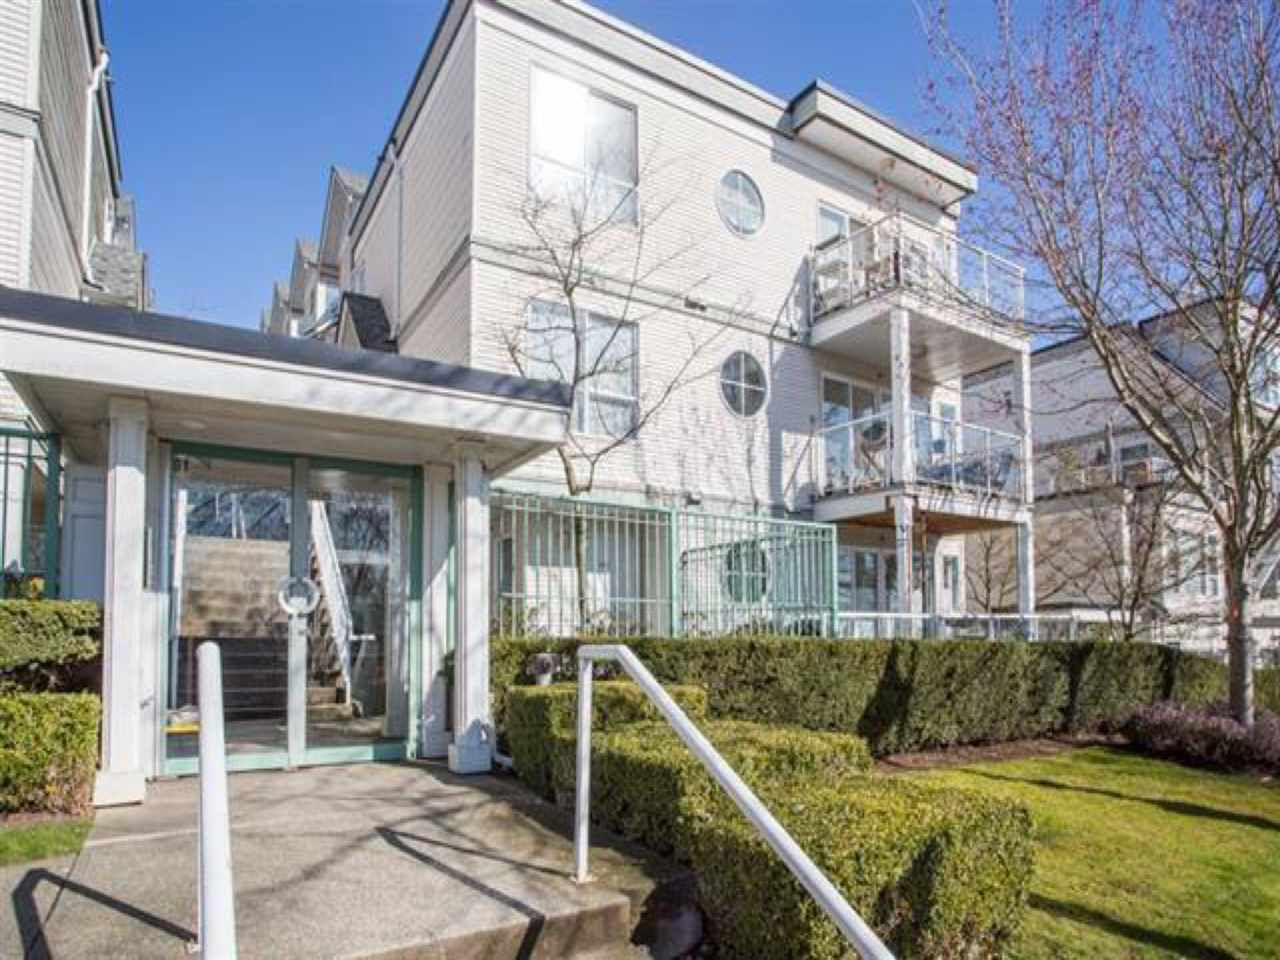 Main Photo: #35-2723 E. Kent Ave in Vancouver: Fraserview VE Townhouse for sale (Vancouver East)